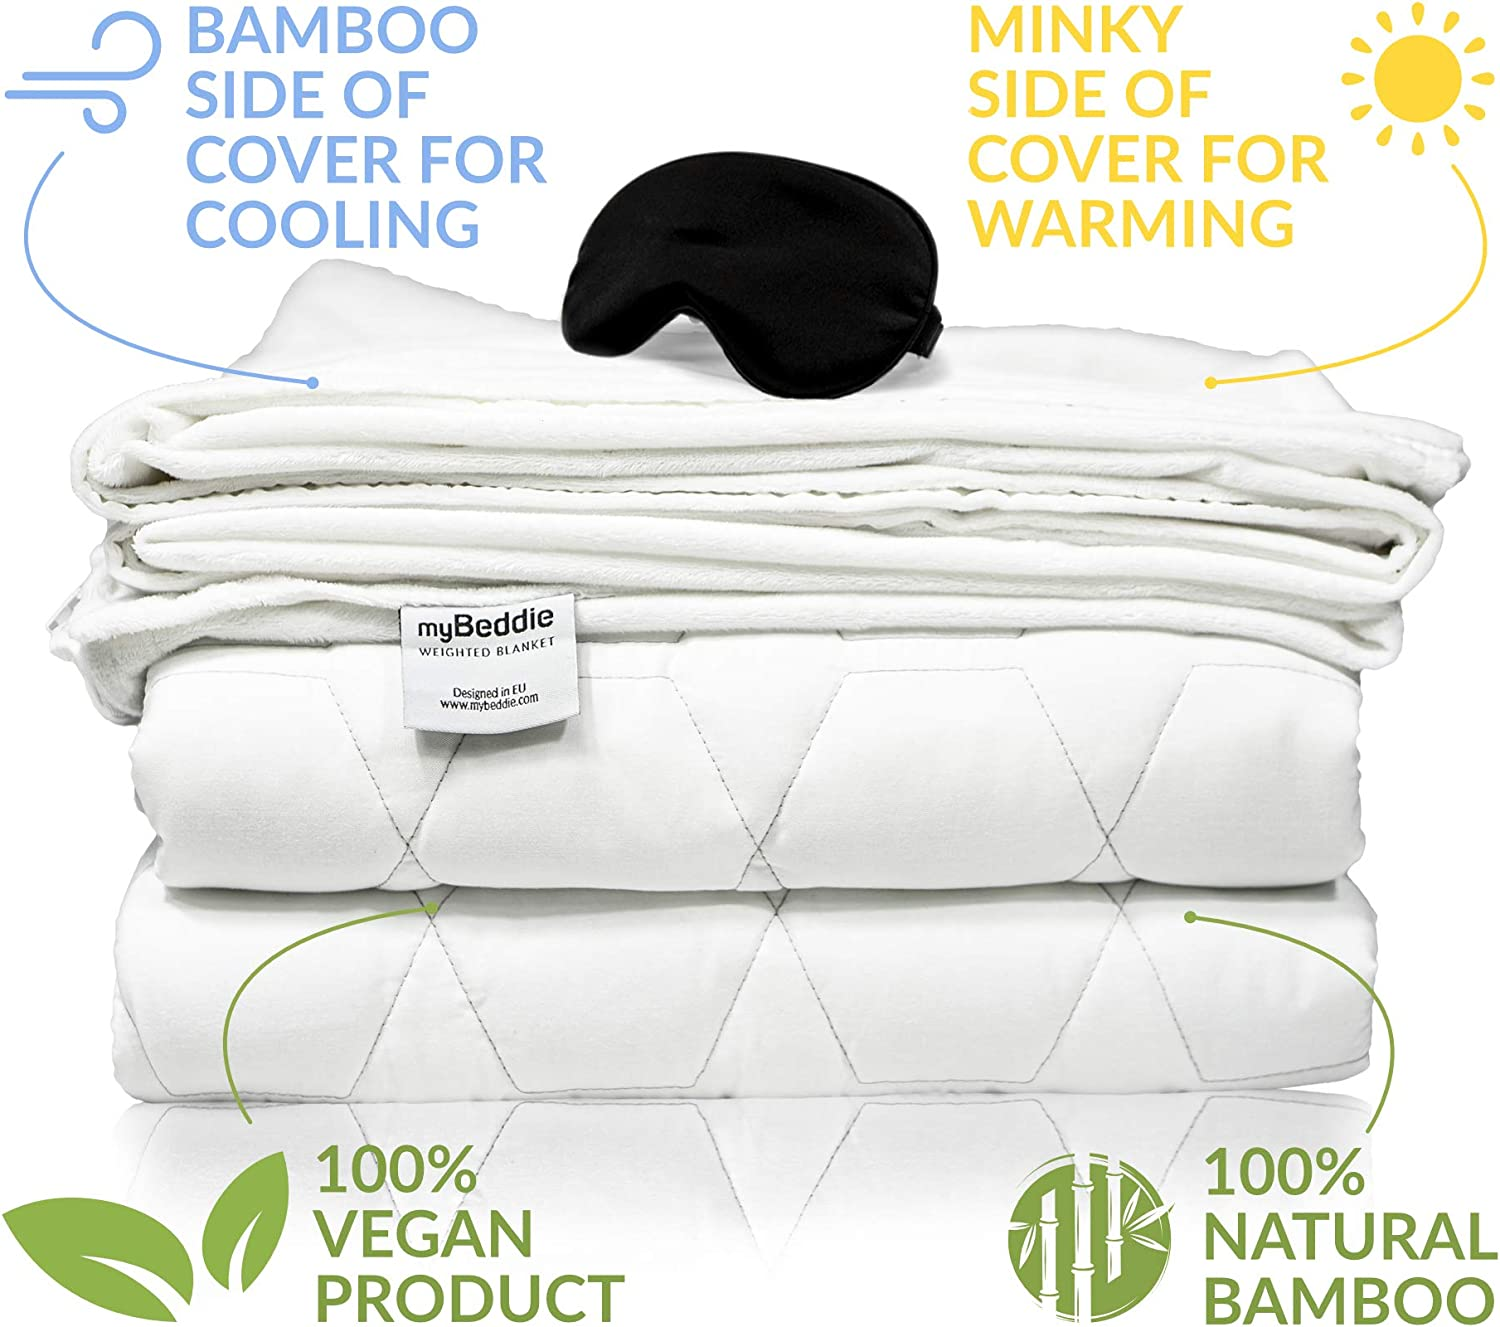 myBeddie Luxurious Cooling Weighted Blanket Bamboo with Removable Cover + Warm Minky Side Calming and Comforting No Leak Premium Glass Beads Adult Size (55x78-20lbs)